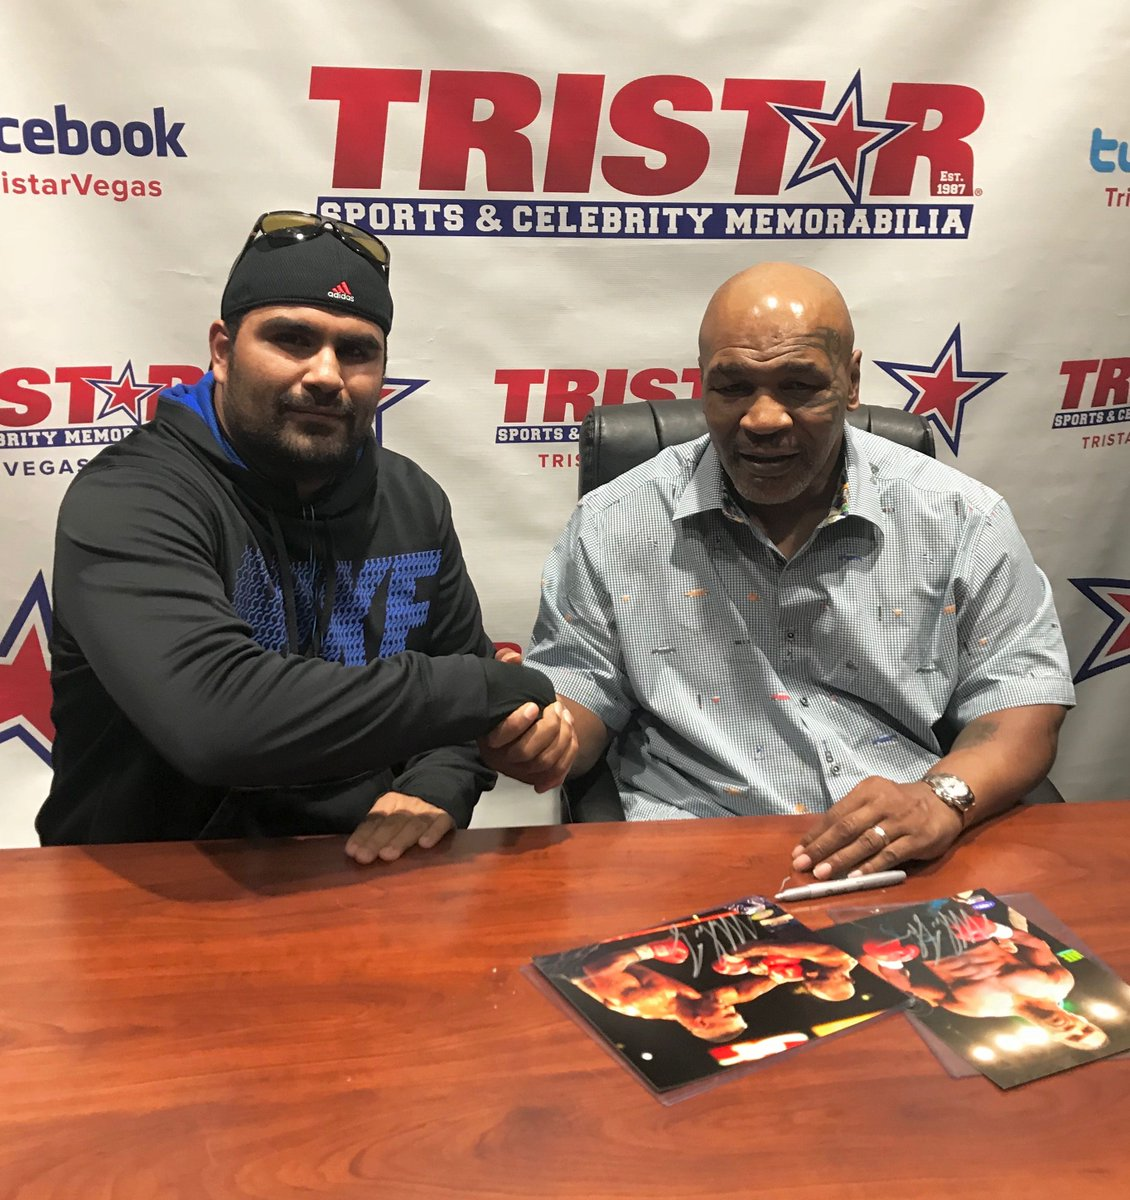 Meet me TODAY and get my autograph in #LasVegas @TristarVegas & @FODCaesars! Info: https://t.co/LCaAn0oifd https://t.co/4HuGOFzpN4